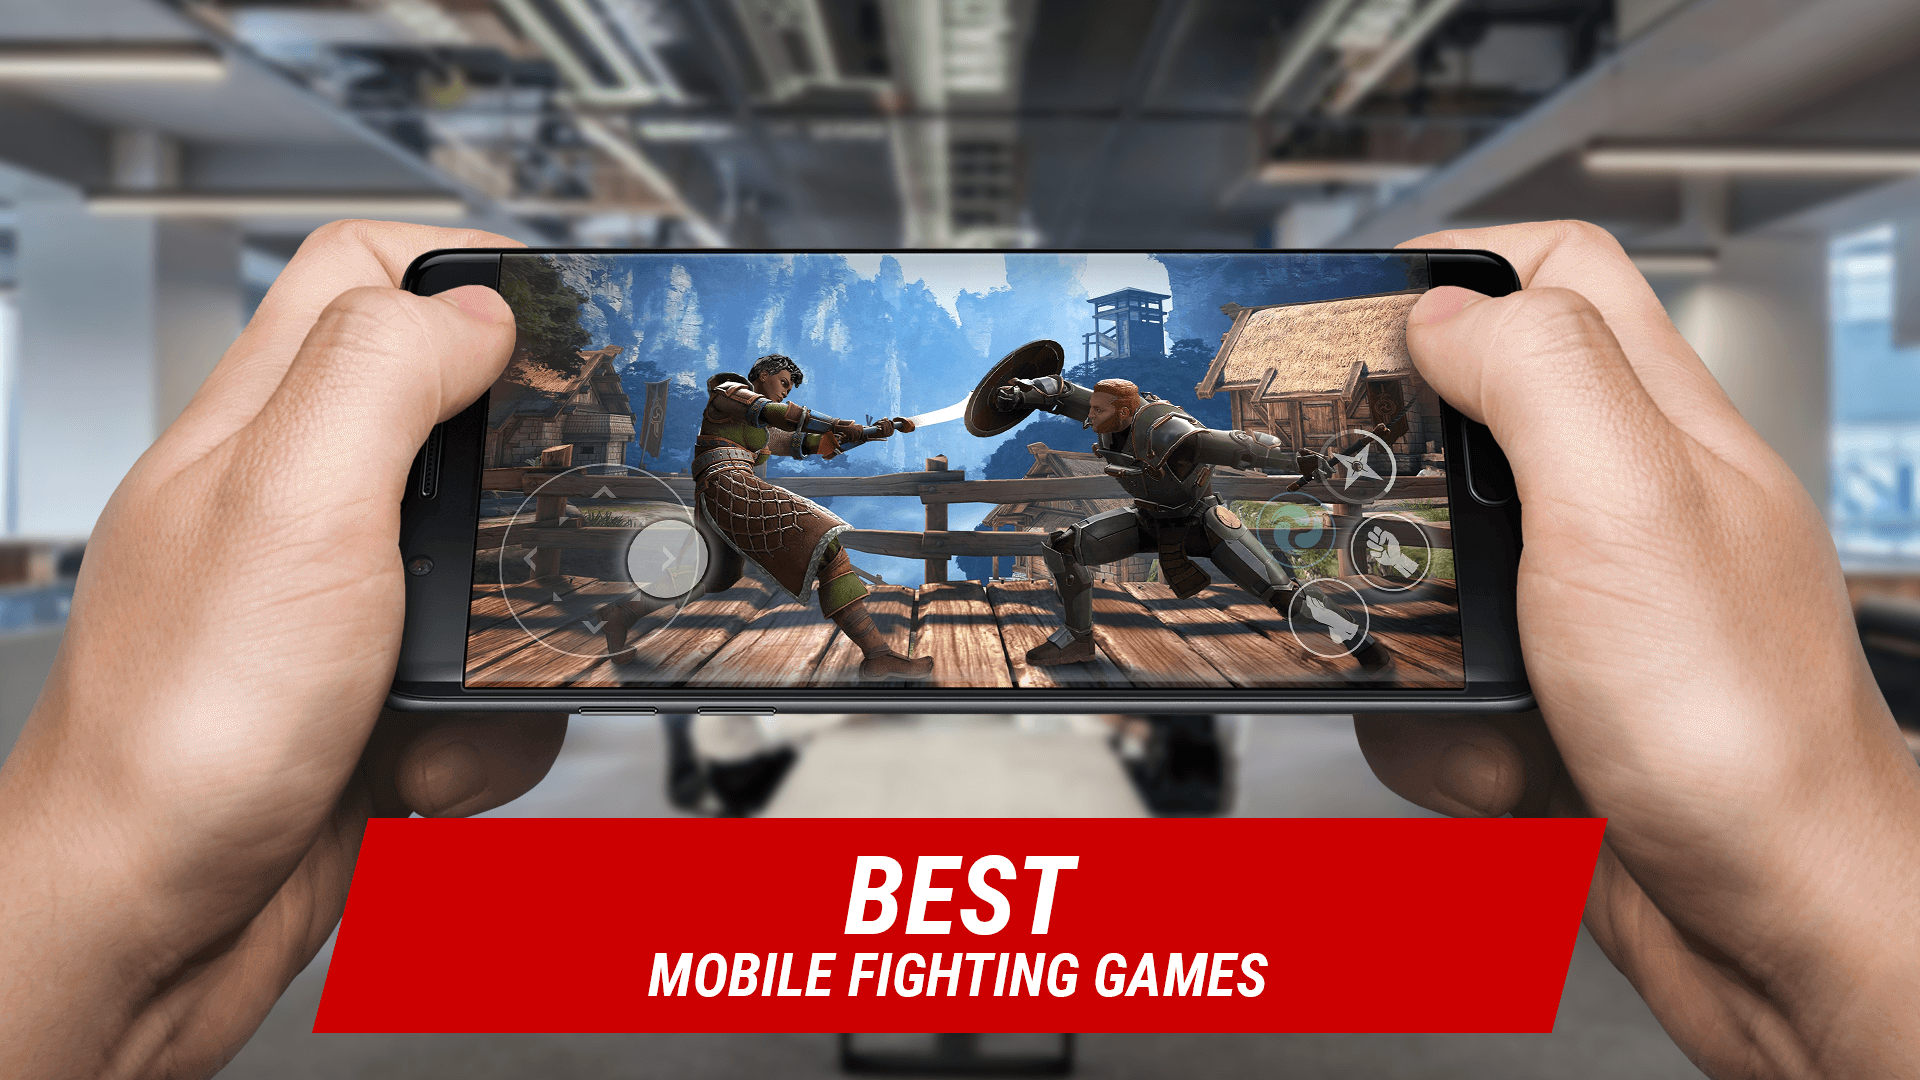 The Best Mobile Fighting Games